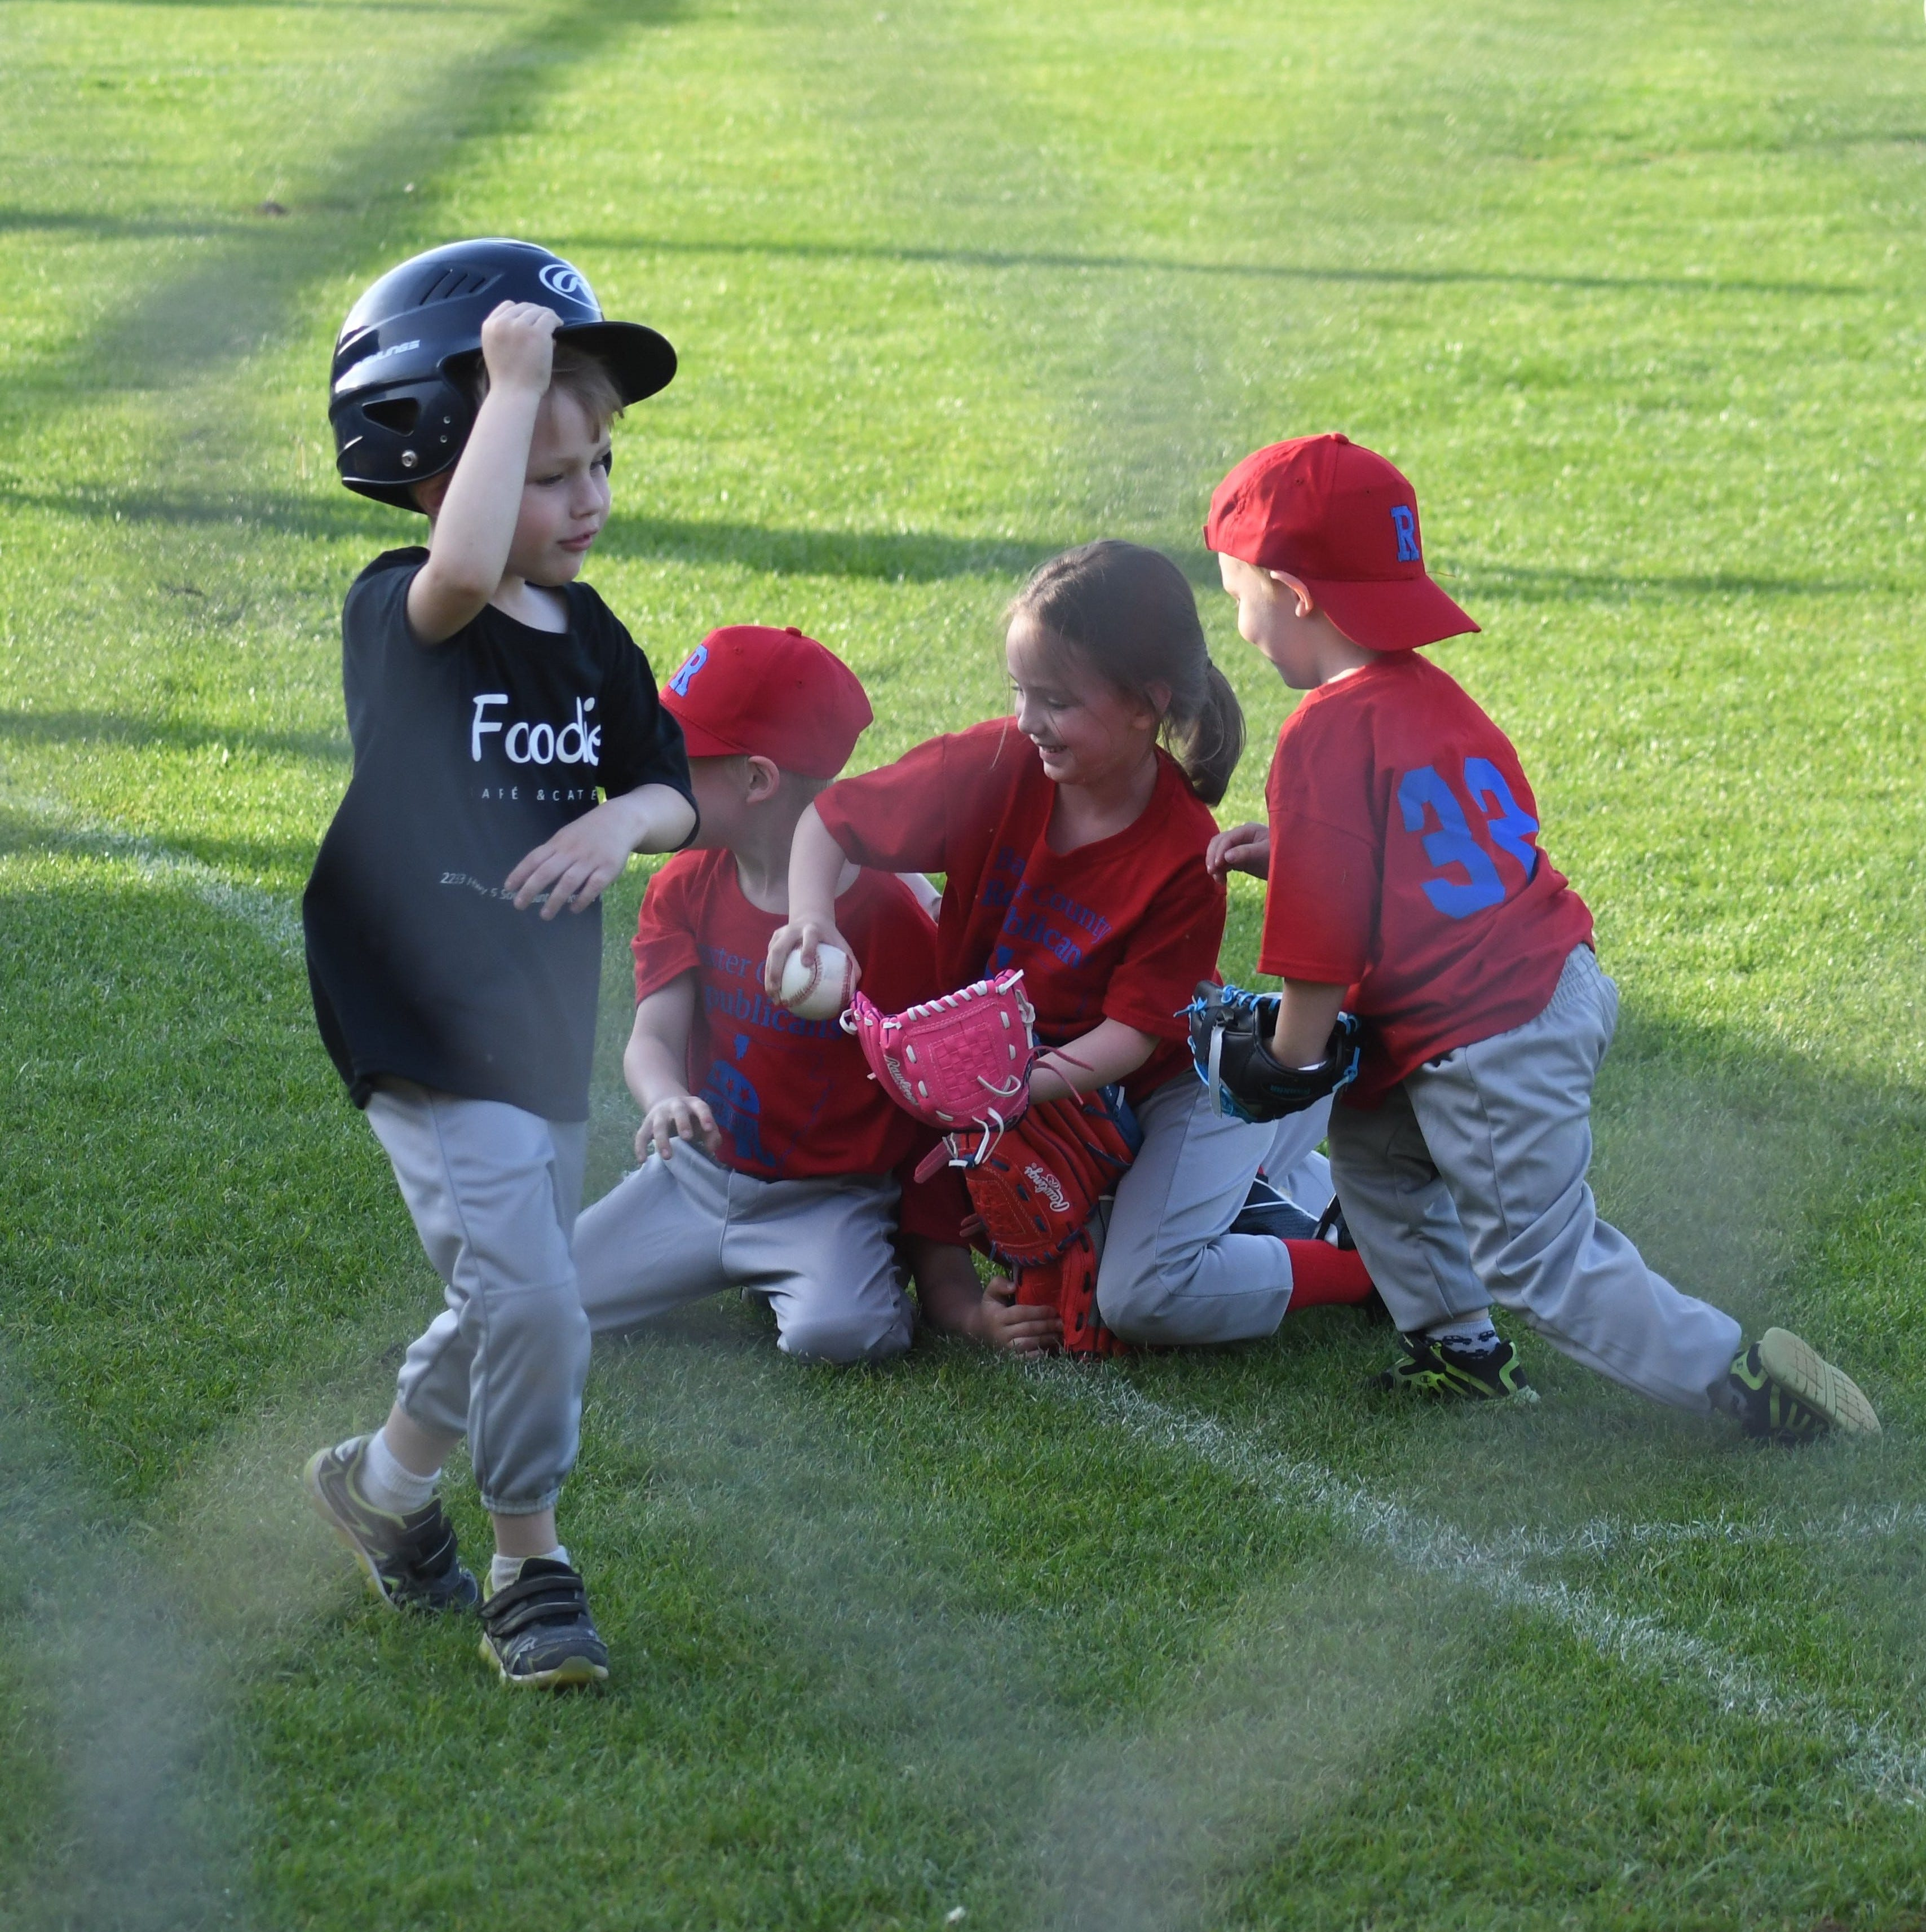 MH Youth League renames ball fields